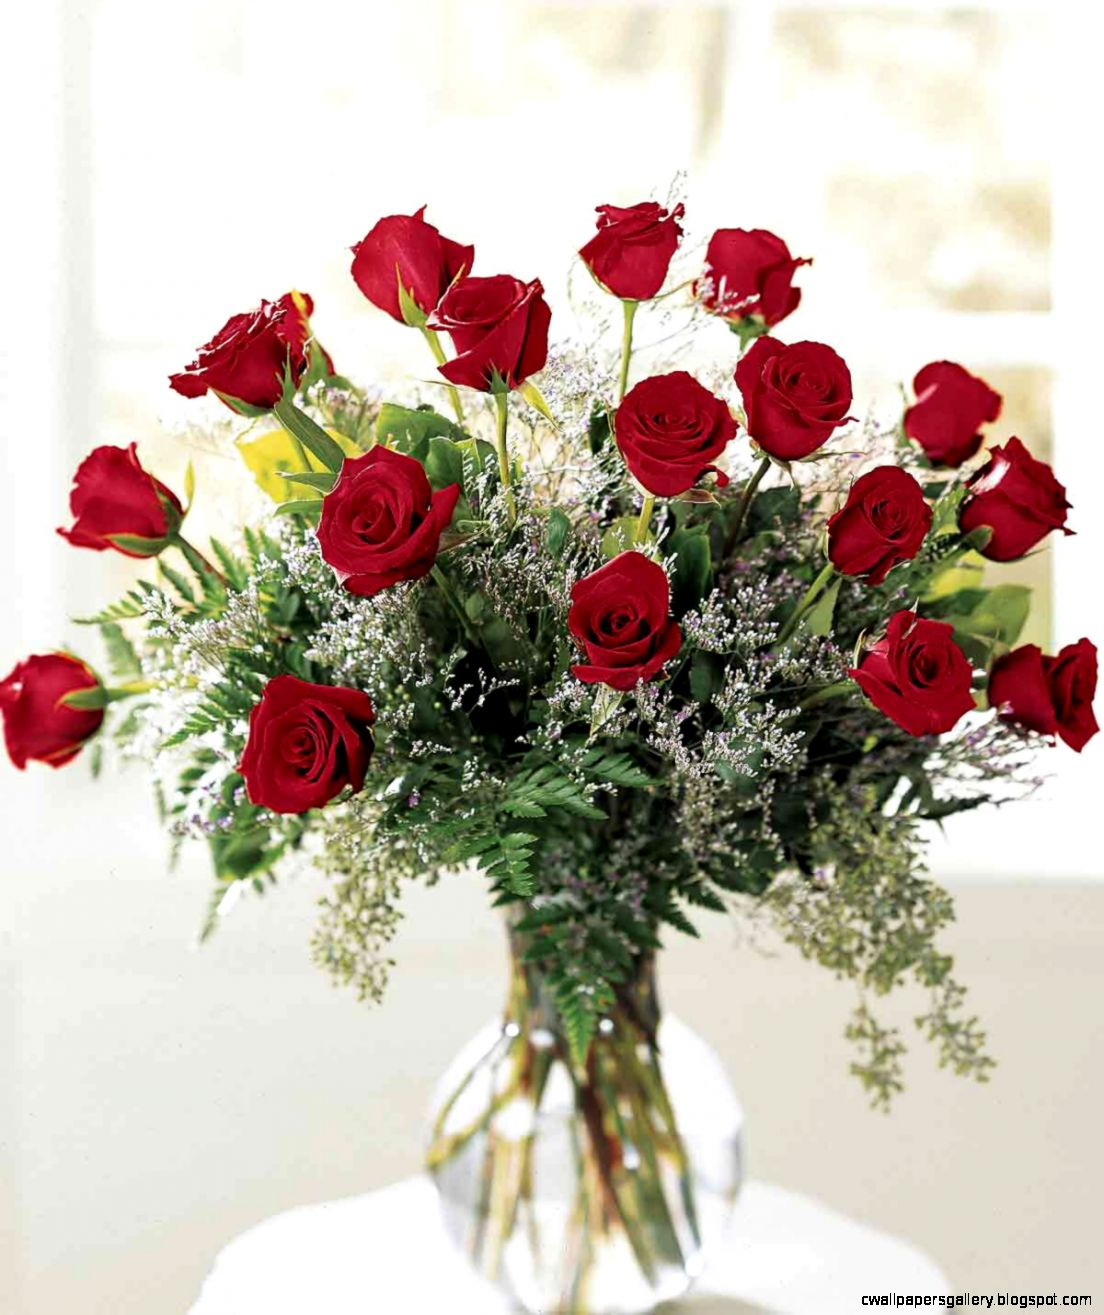 roses   Google Search  Roses to appreciate  Pinterest  Red Rose